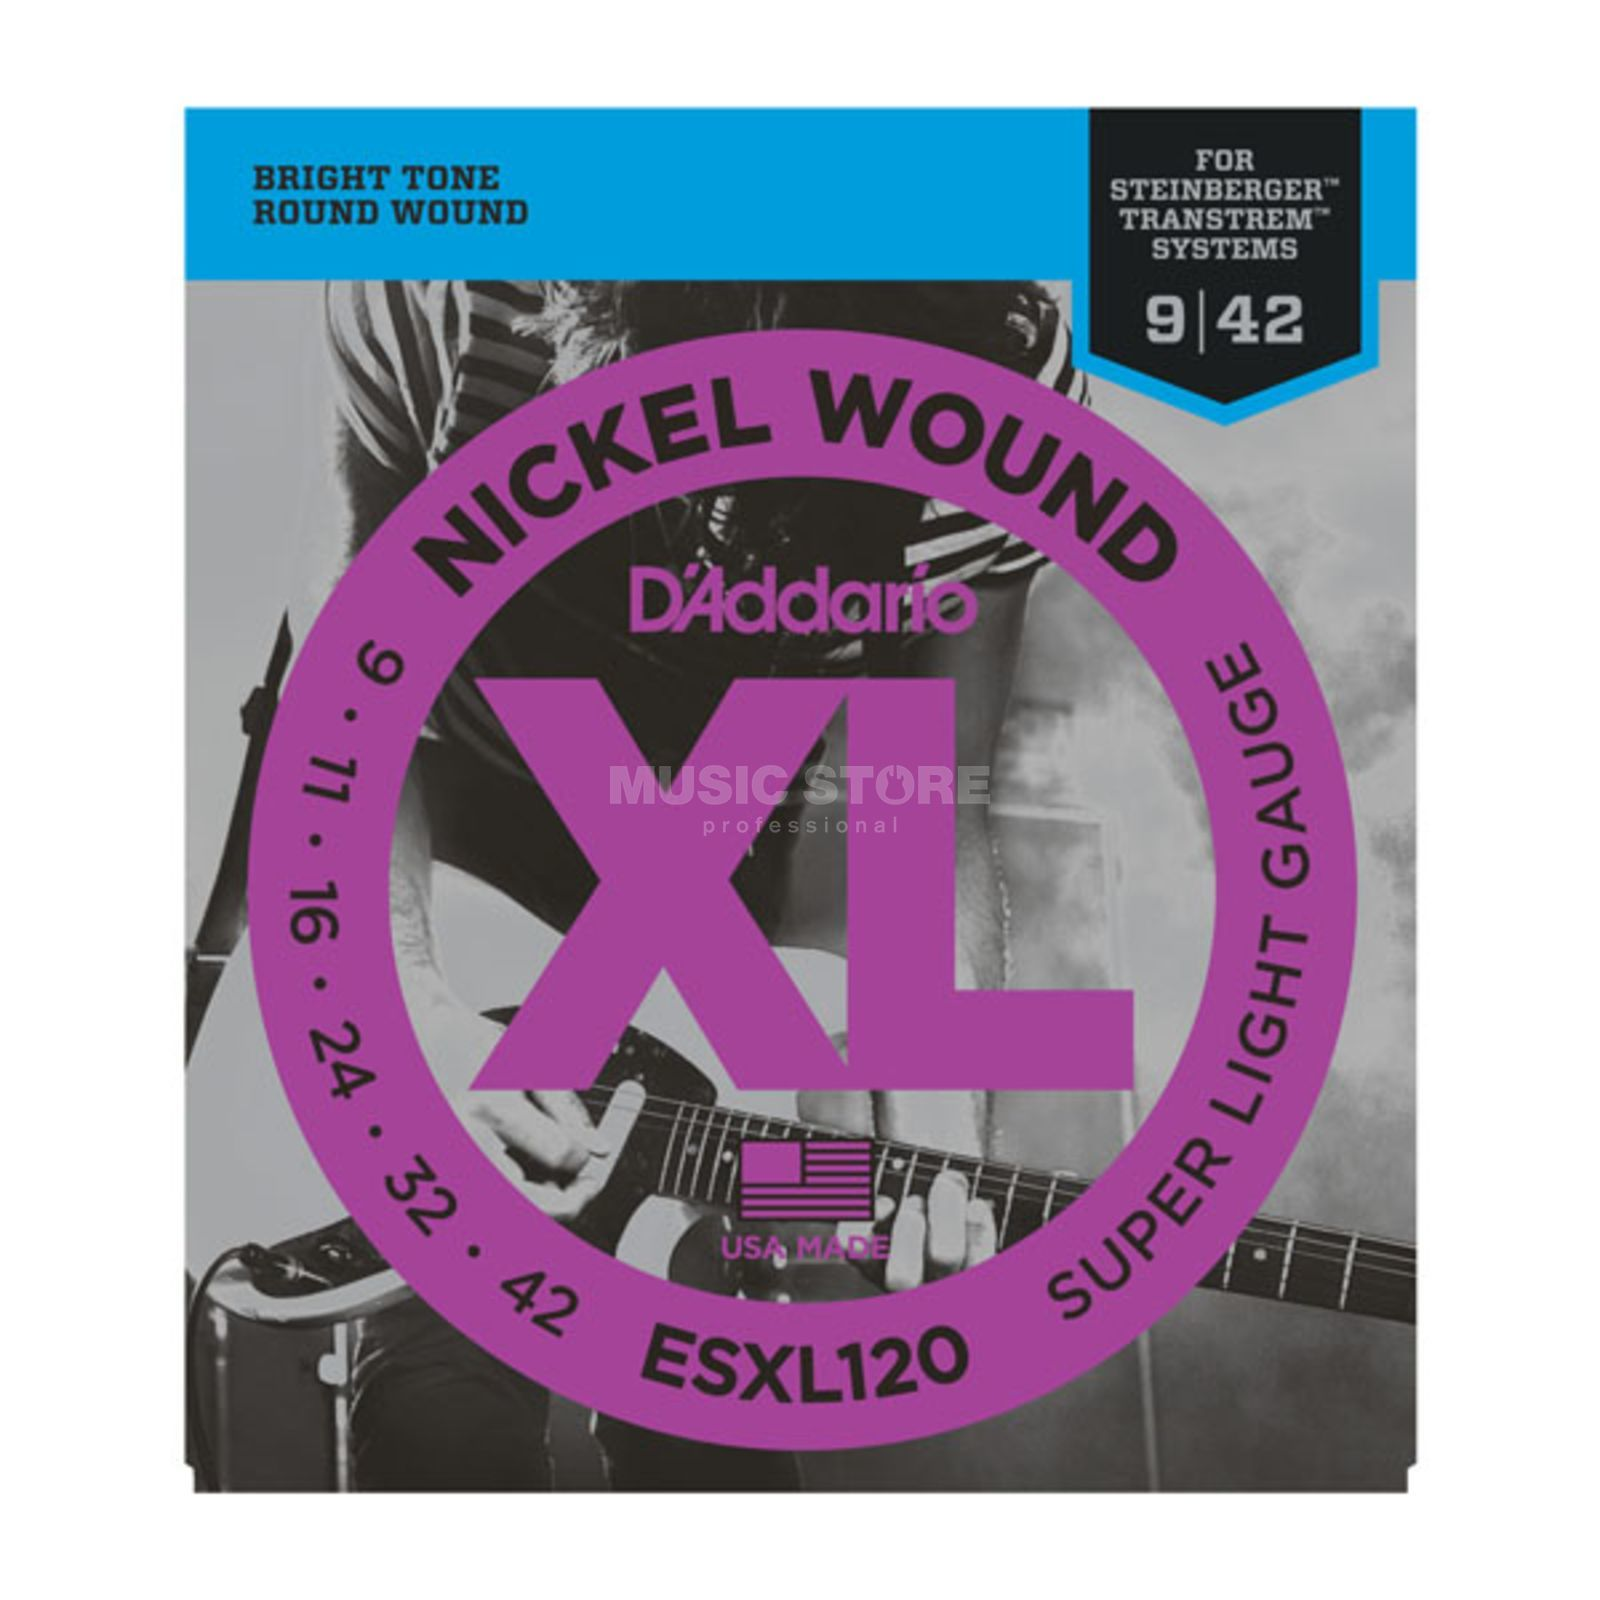 D'Addario Double Ball Saiten ESXL120 09-42 Nickel Wound Produktbild